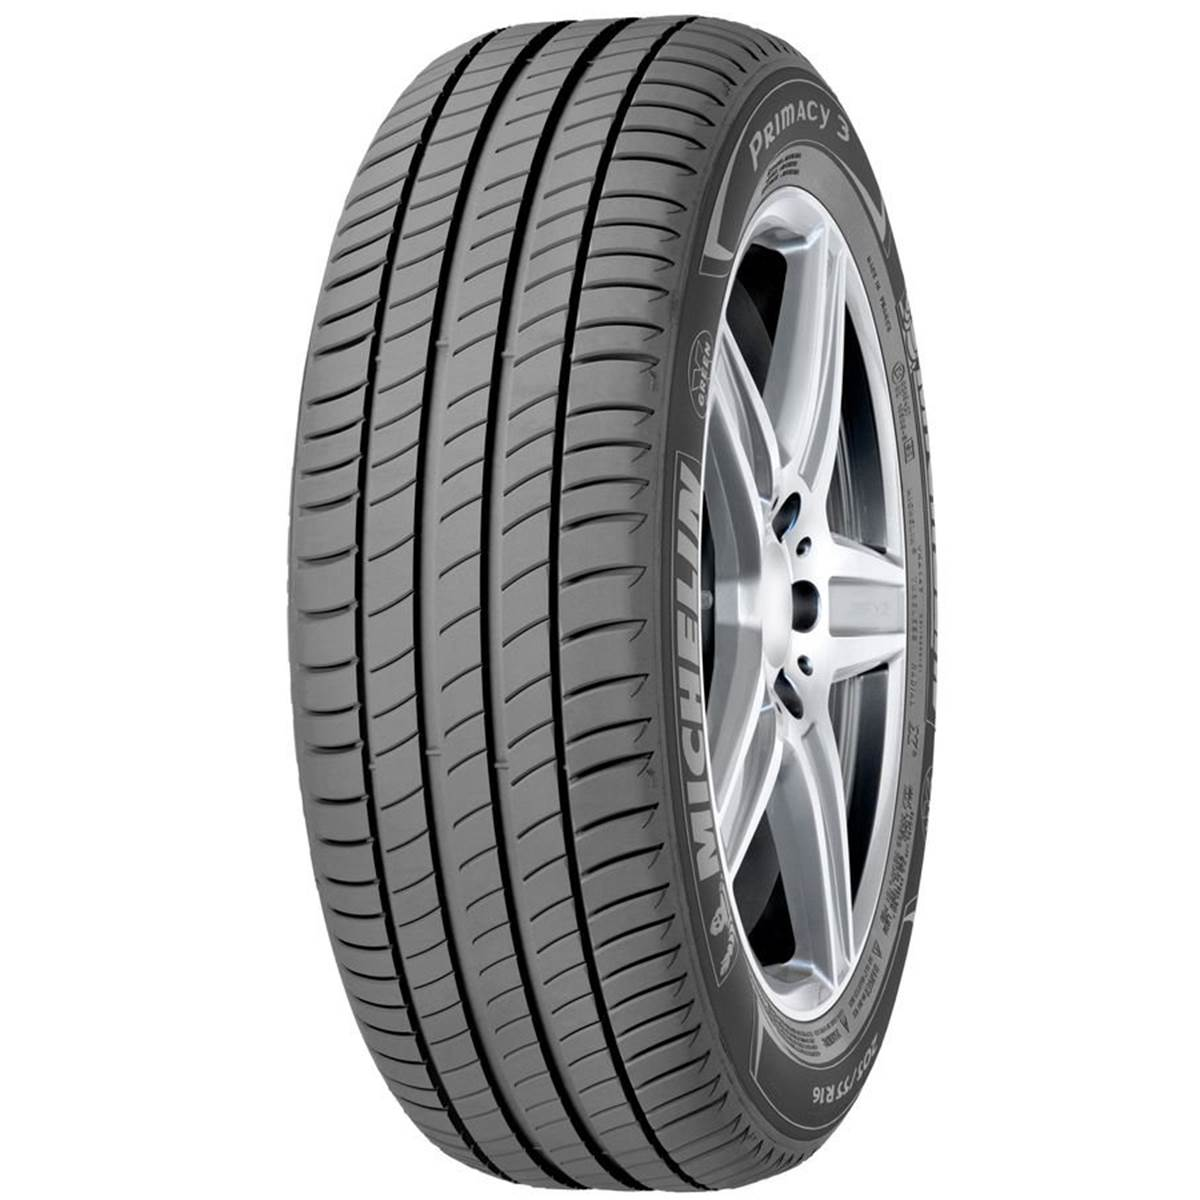 Pneu Michelin 225/55R17 97Y Primacy 3